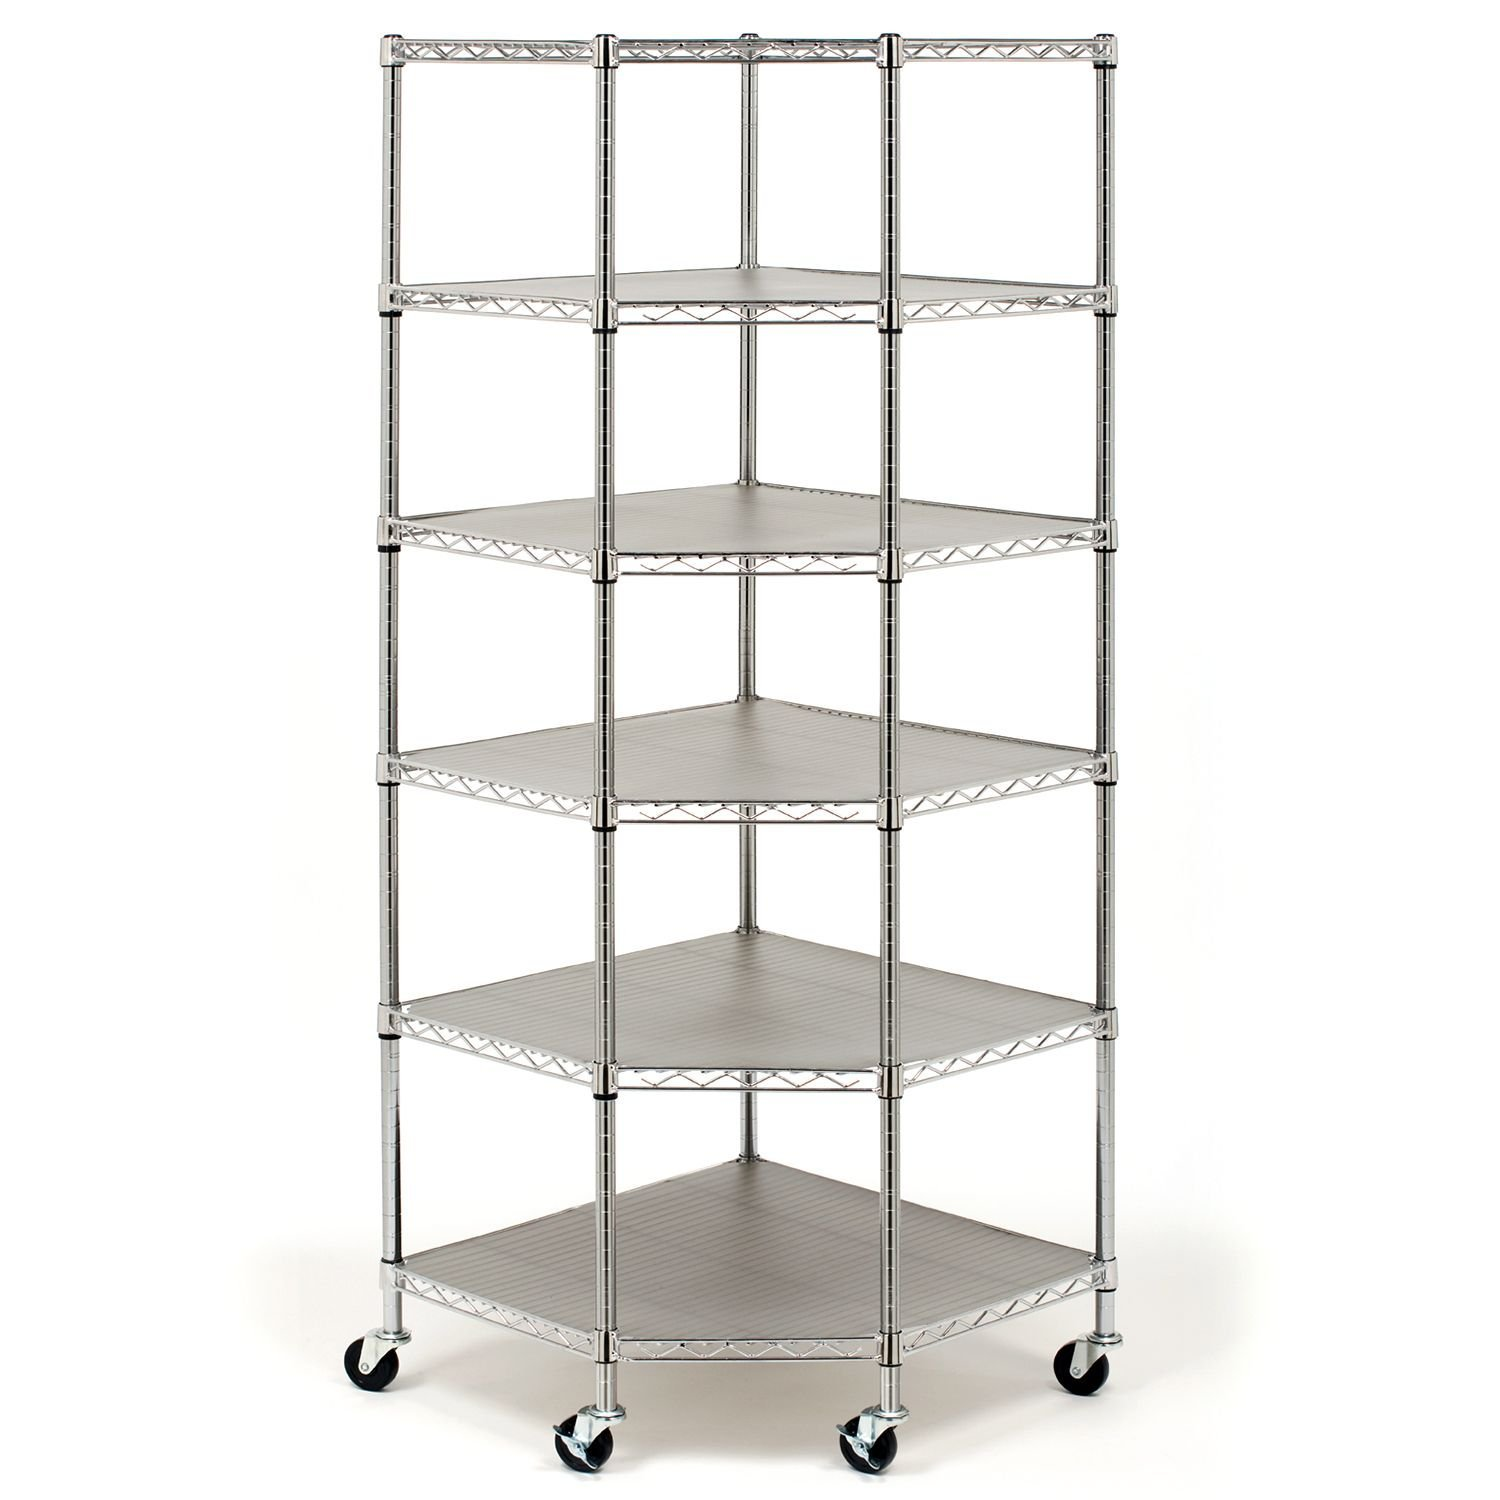 Heavy Duty Steel 6-Tier Corner Restaurant Shelf Commercial Food Storage, NSF Approved